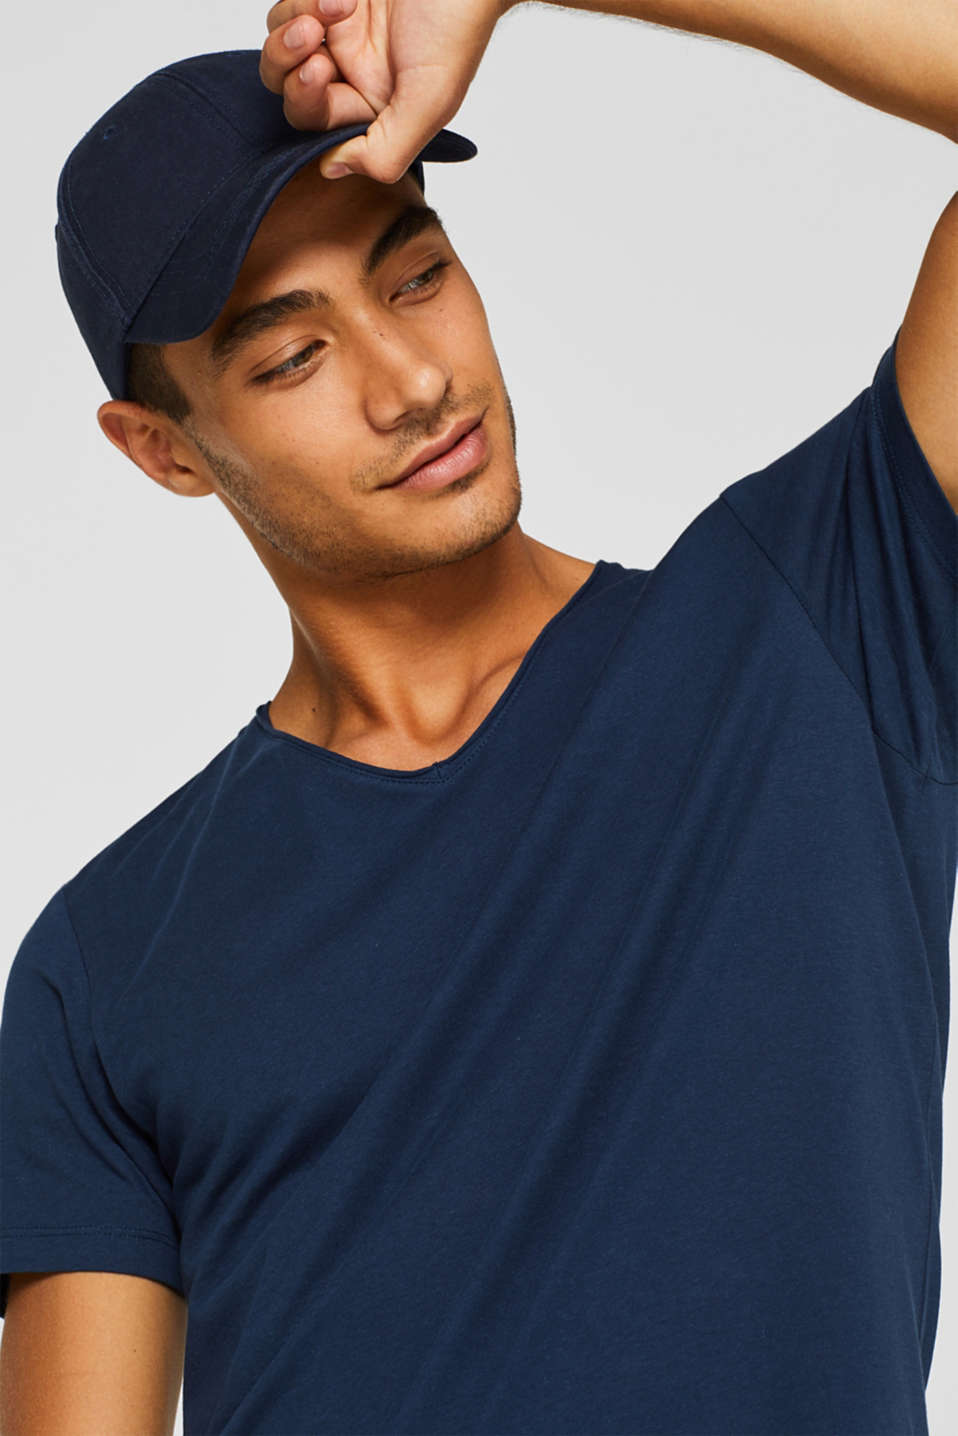 Jersey cotton top, NAVY, detail image number 5